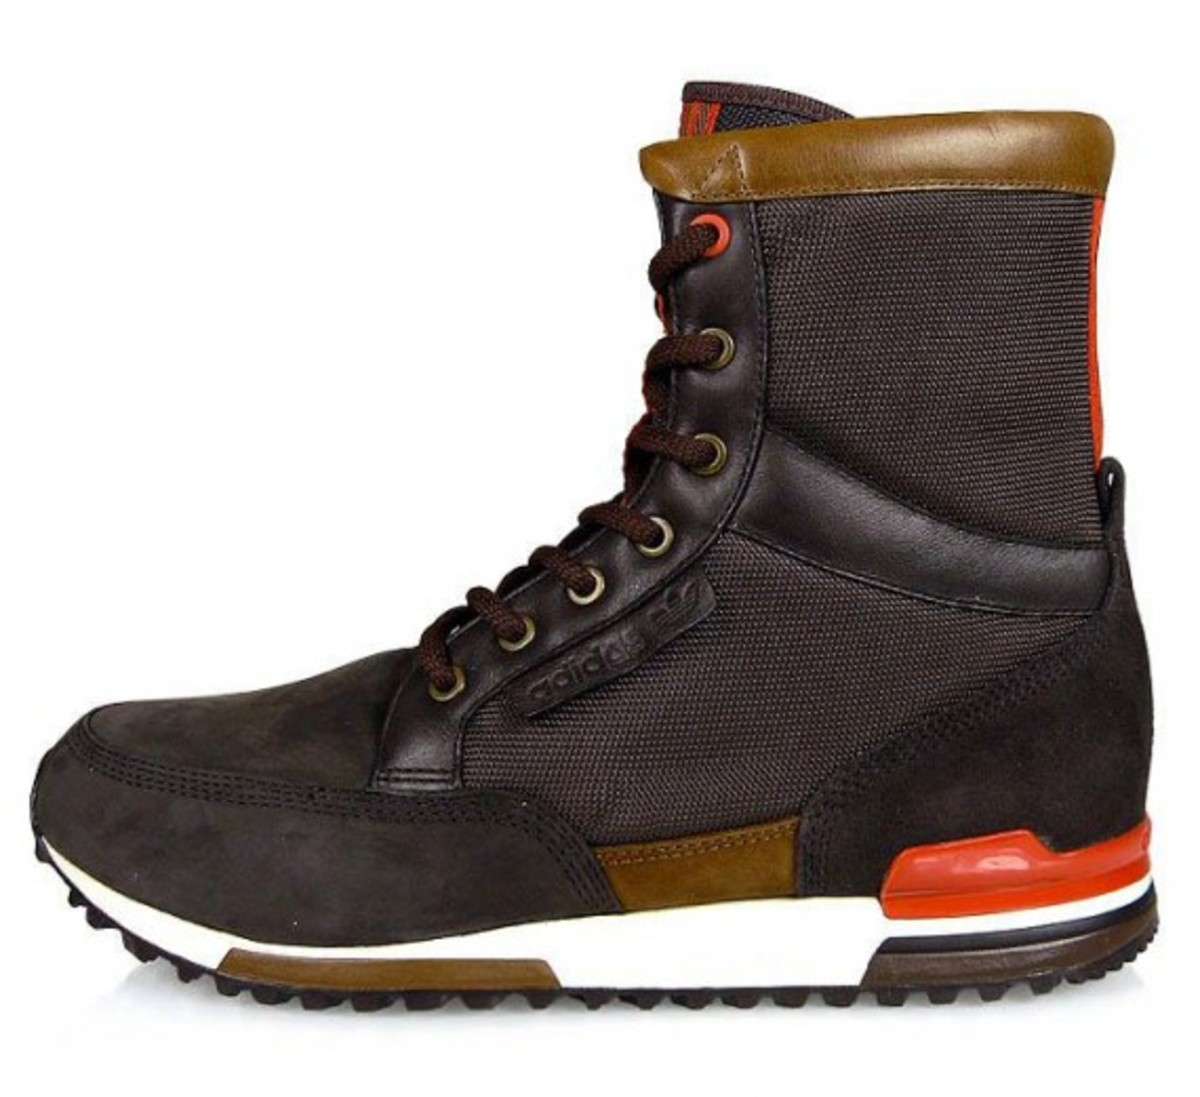 adidas-zx700-boat-winter-boot-hi-01